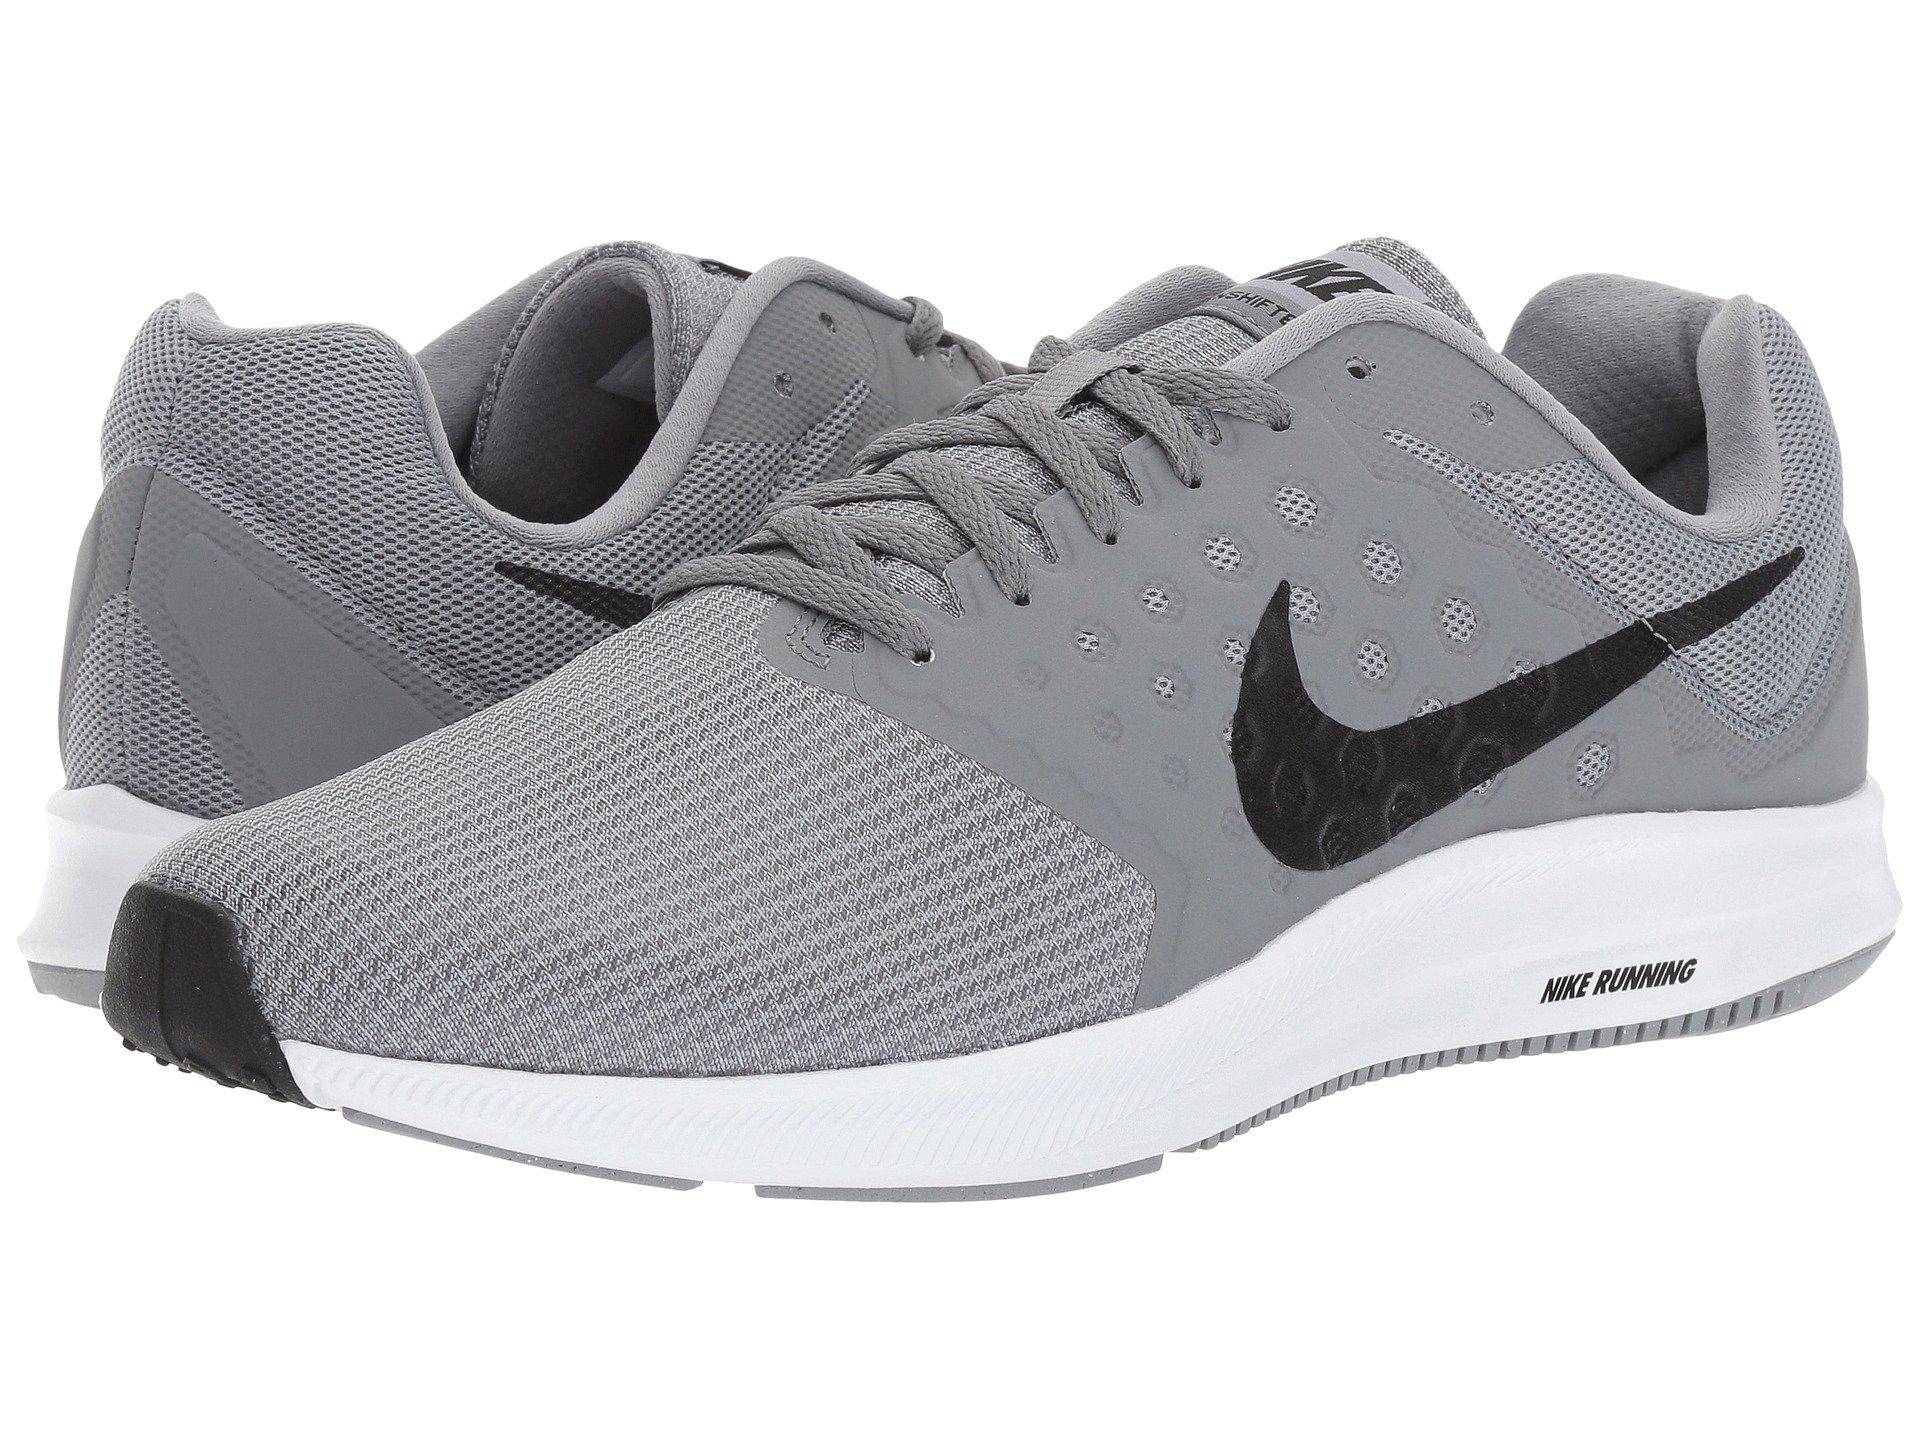 514c6904a7251 Lyst - Nike Downshifter 7 (black volt white) Men s Running Shoes in ...